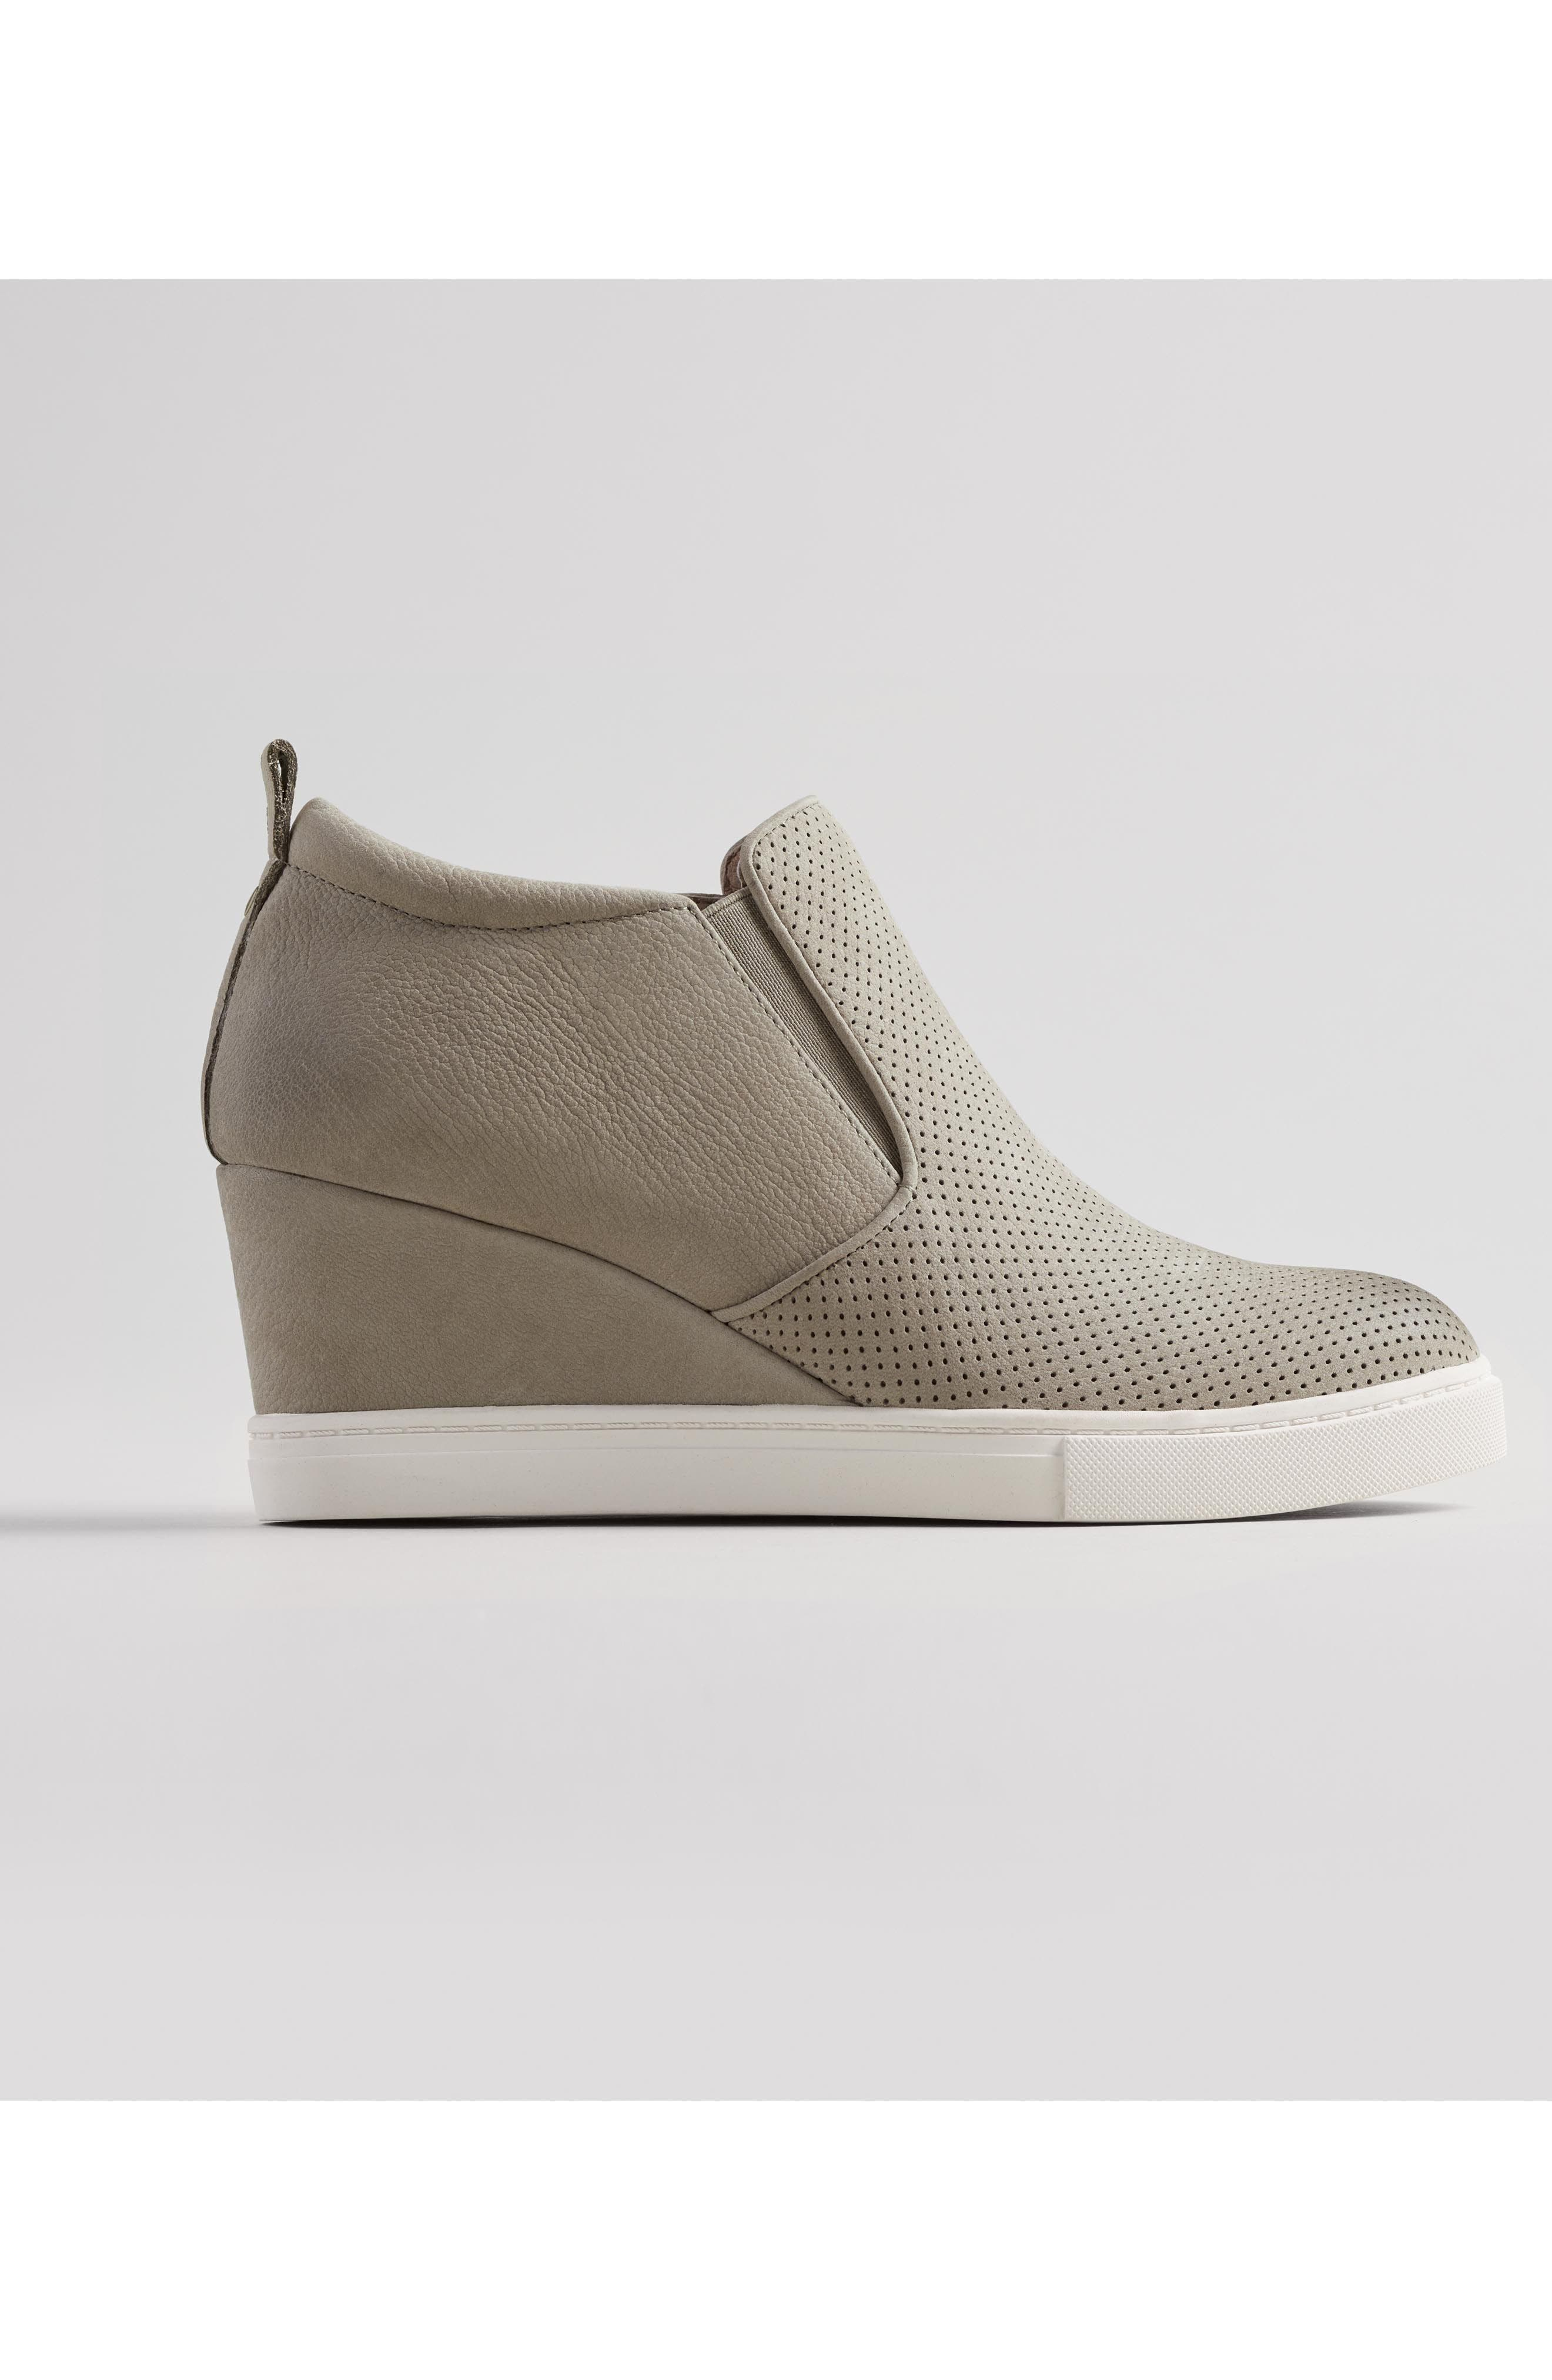 Aiden Wedge Sneaker,                             Alternate thumbnail 7, color,                             260